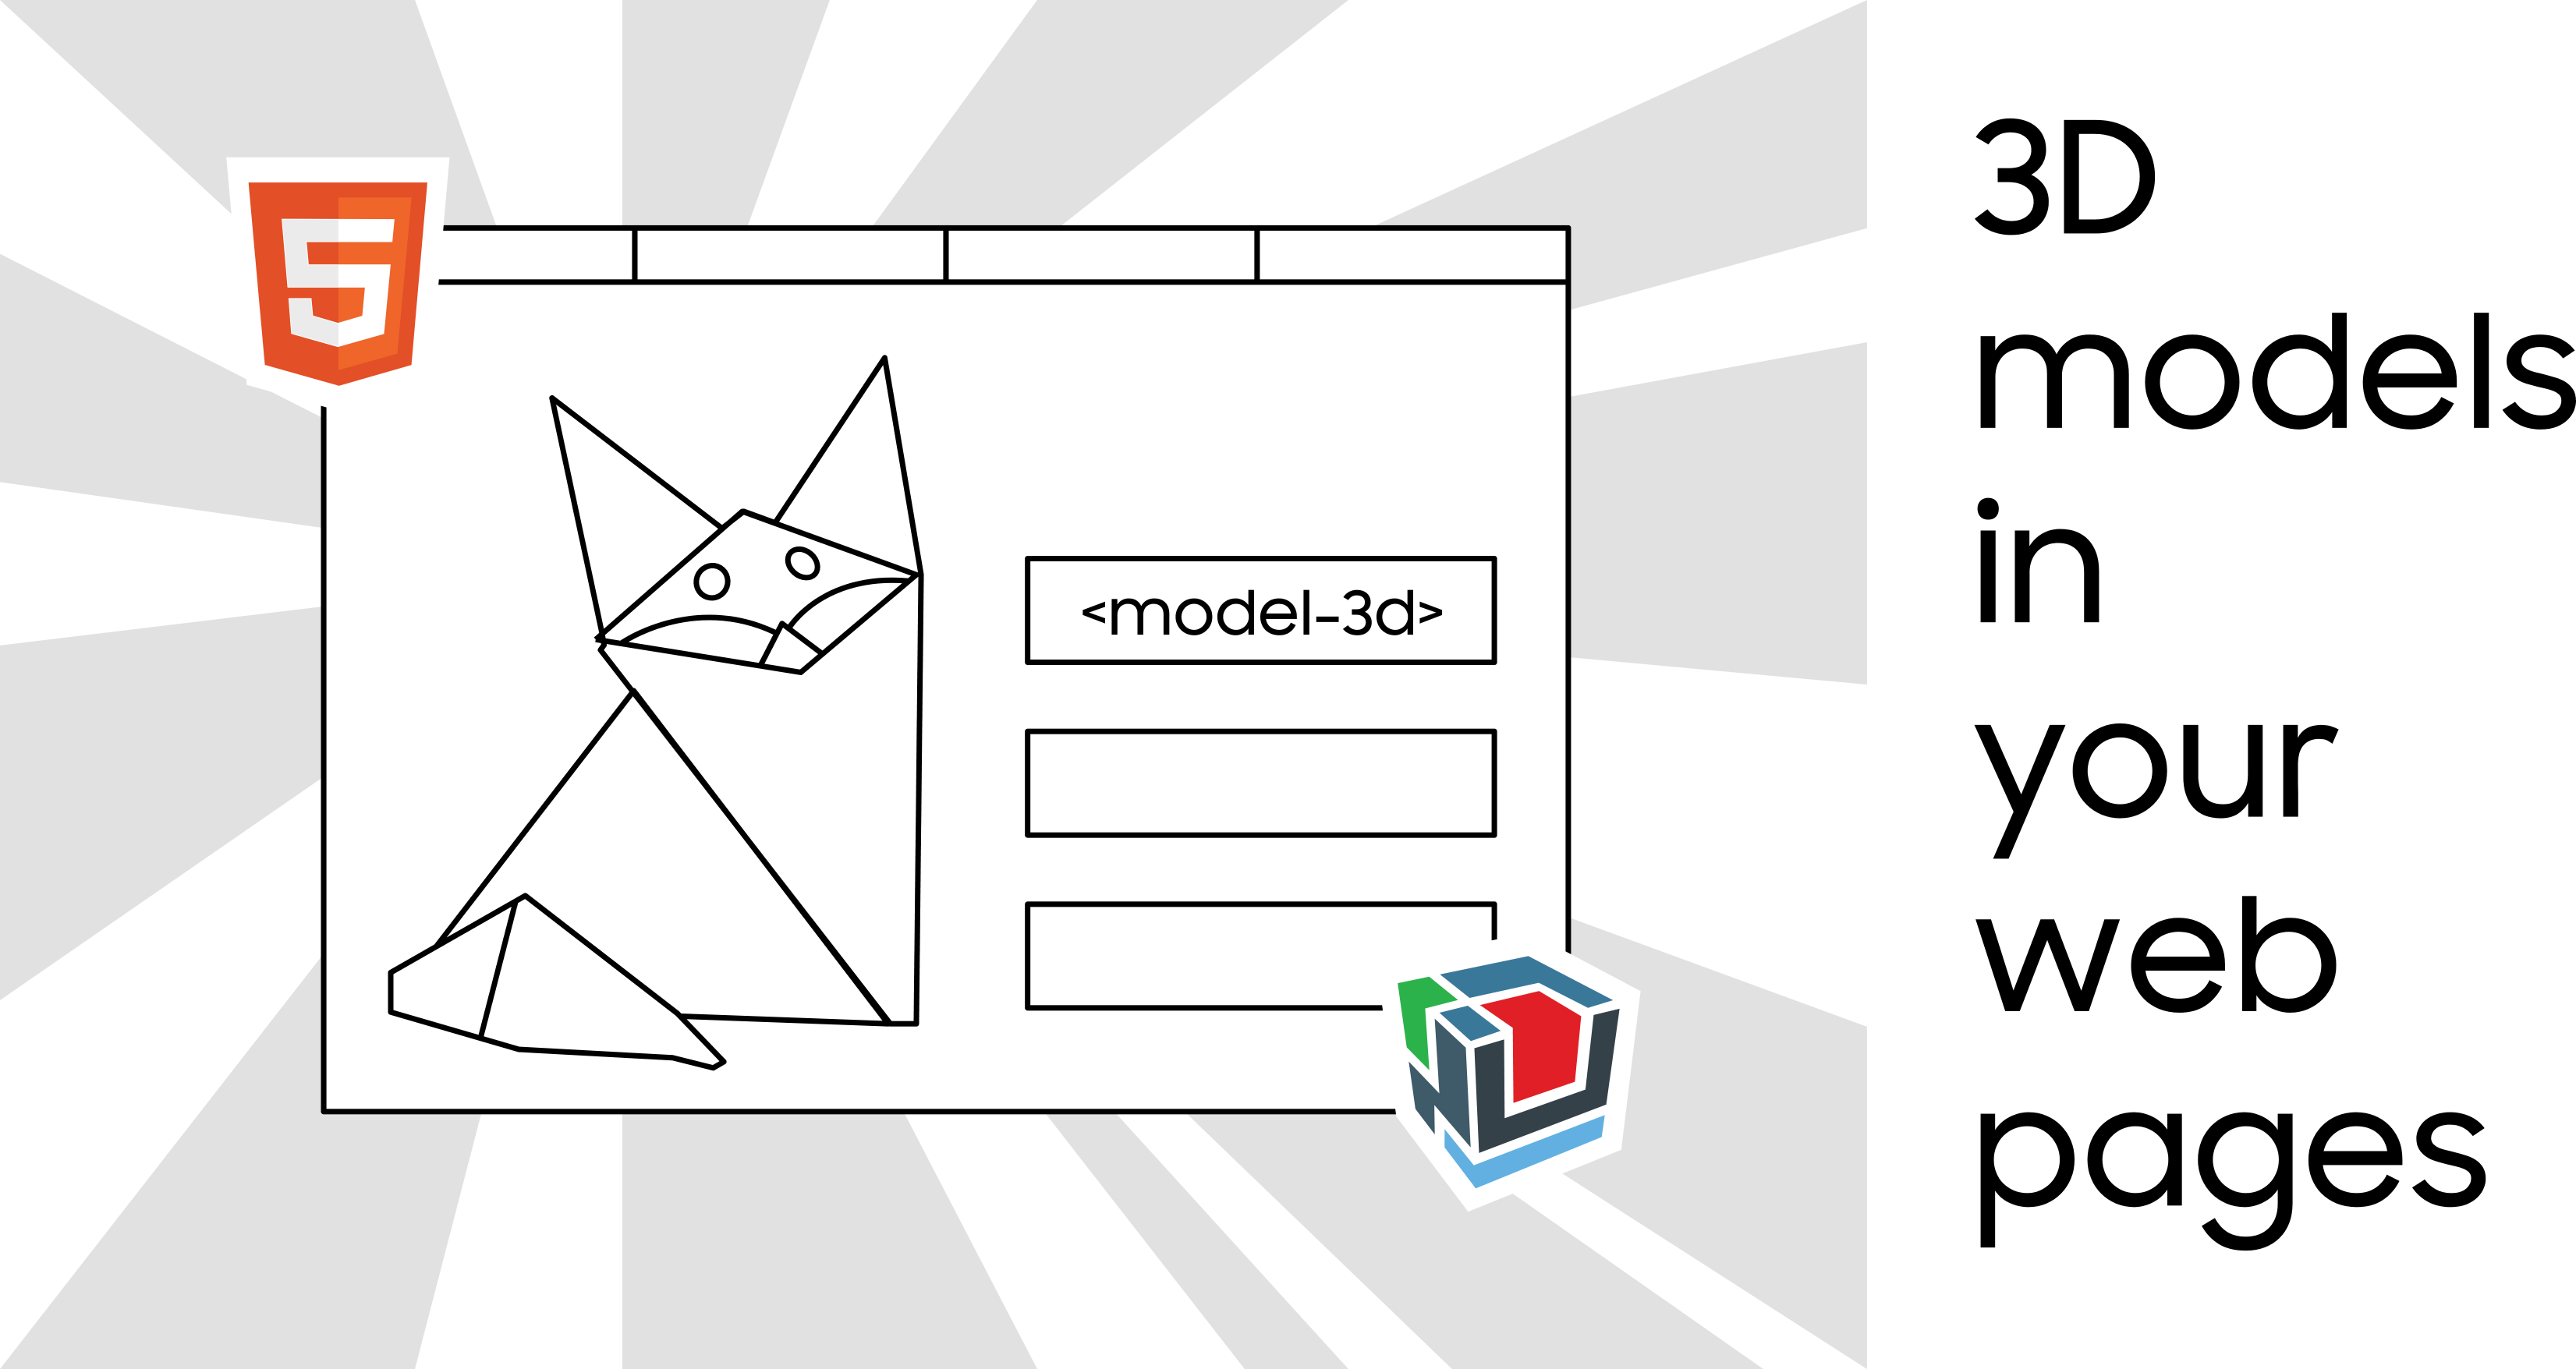 do it yourself: add a 3D model to a web page using web components